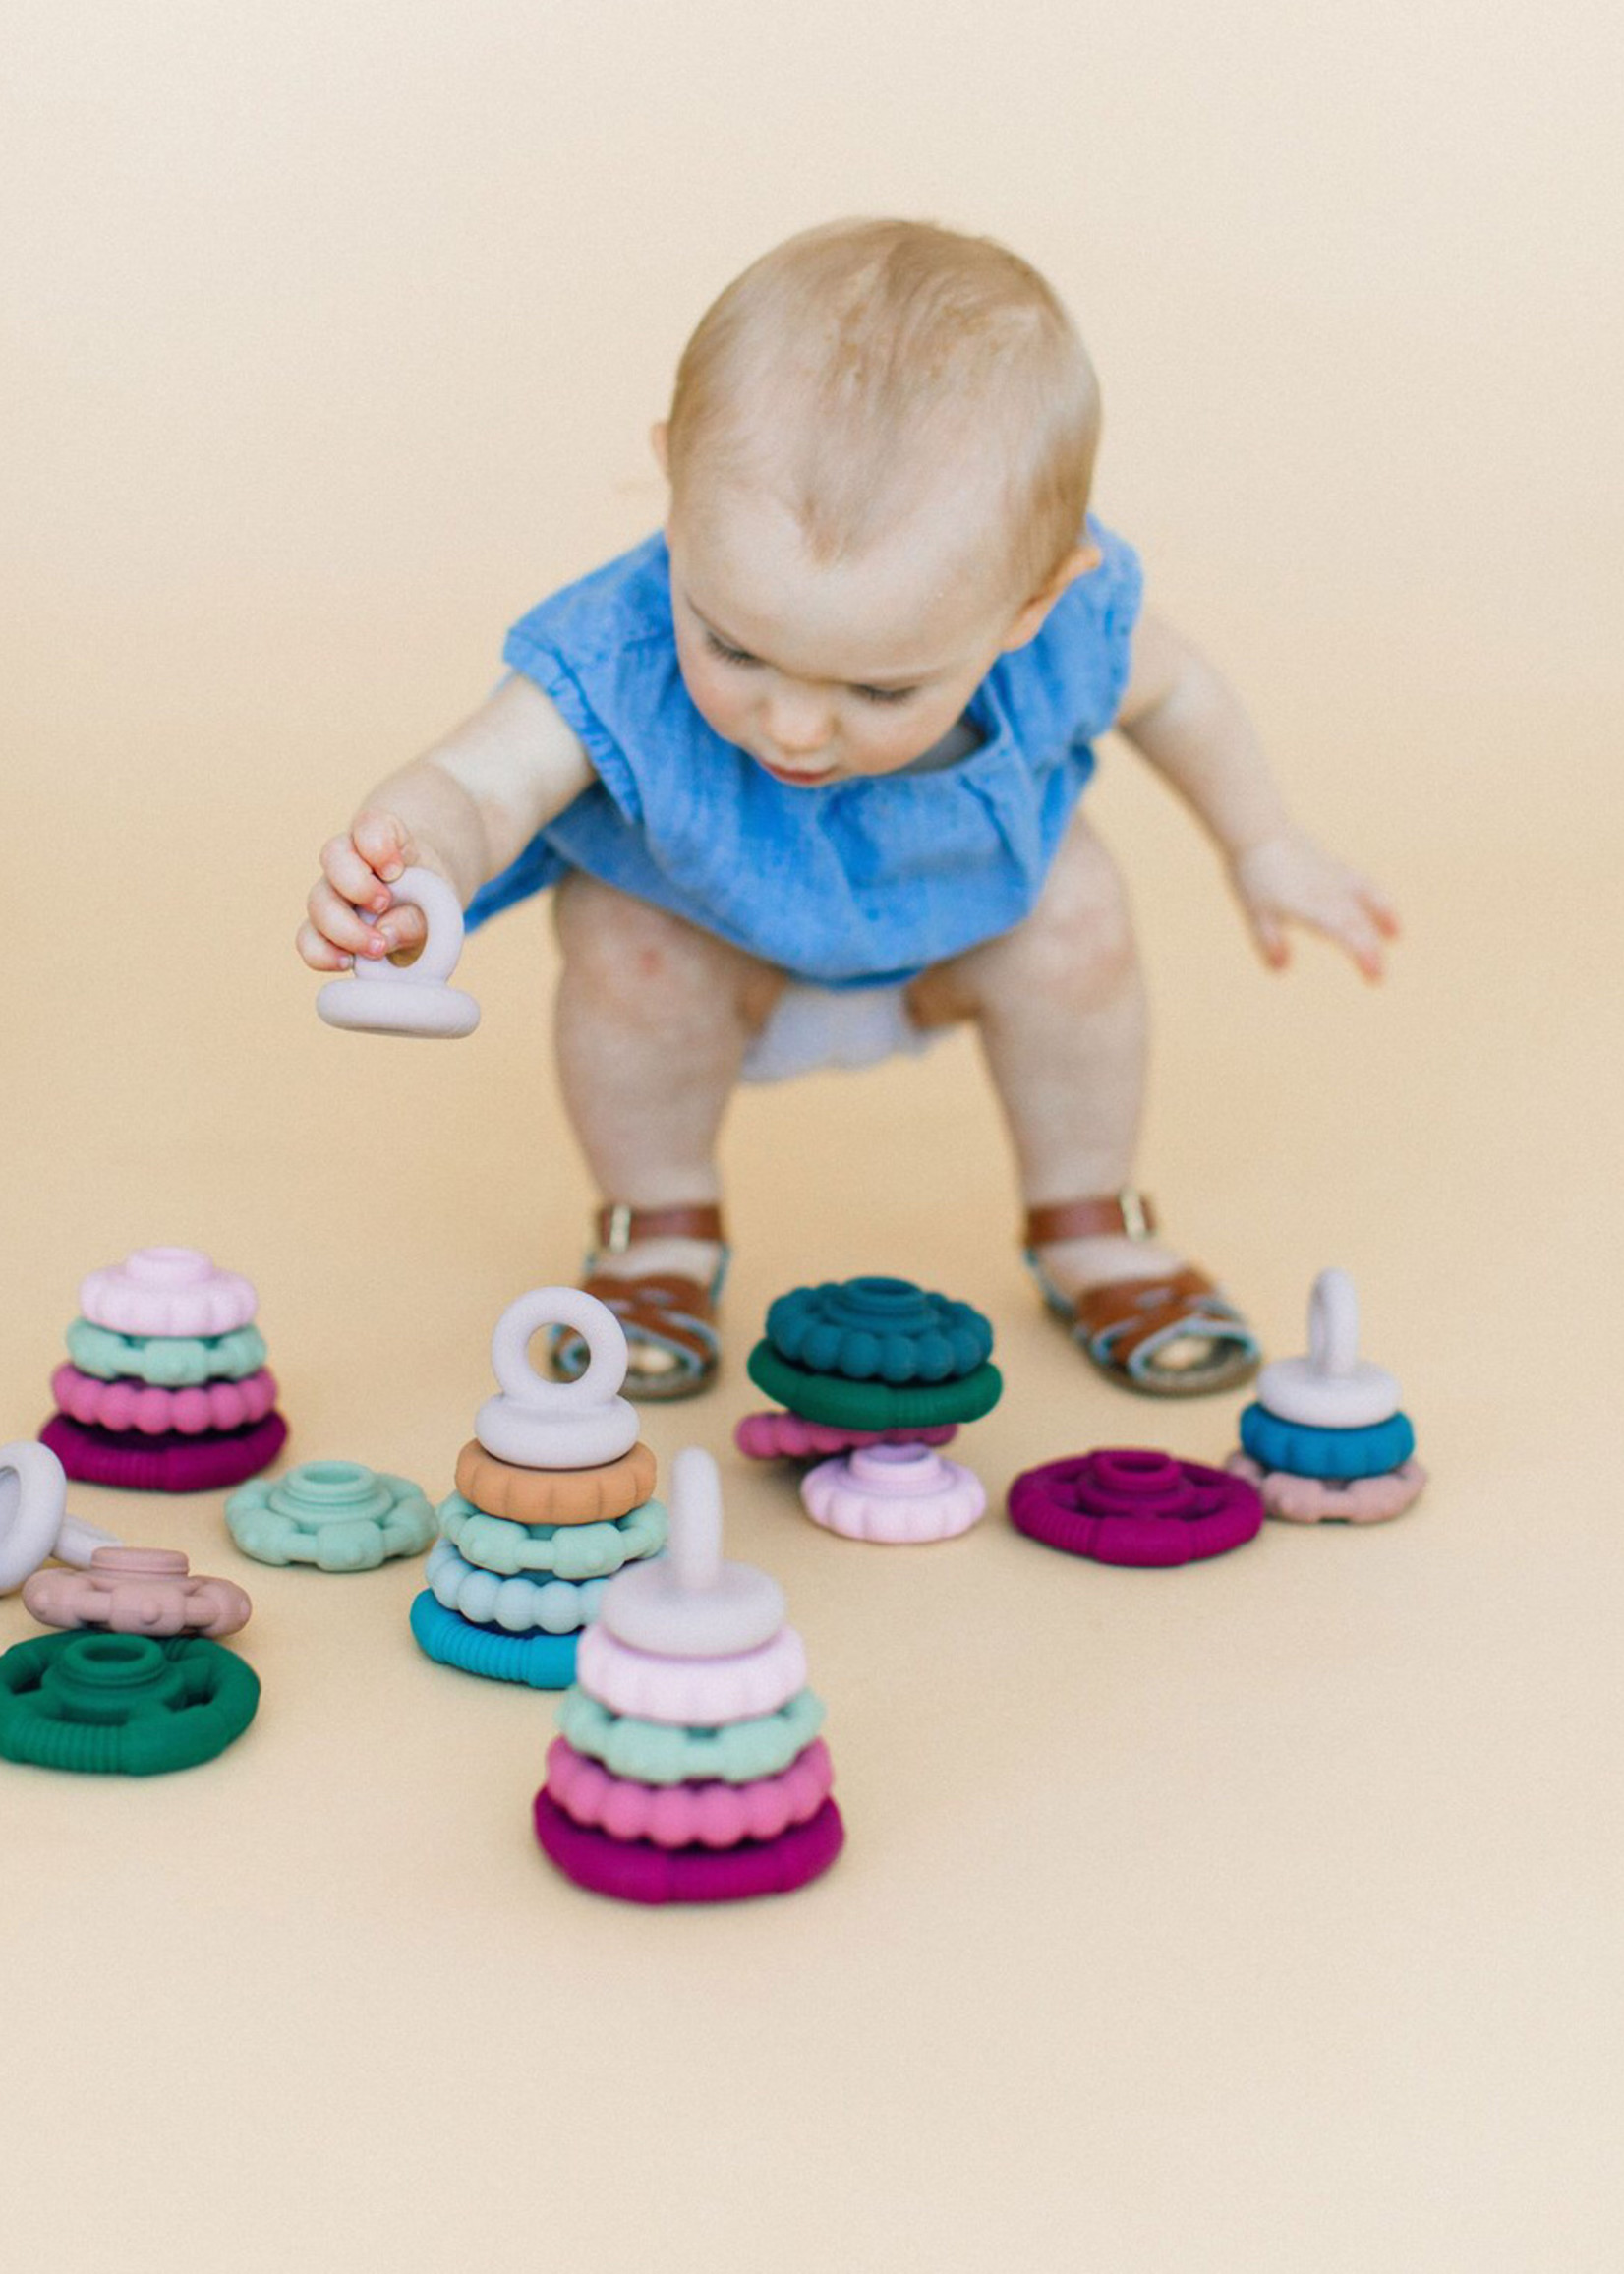 chewable charm Sydney Teether Stacker